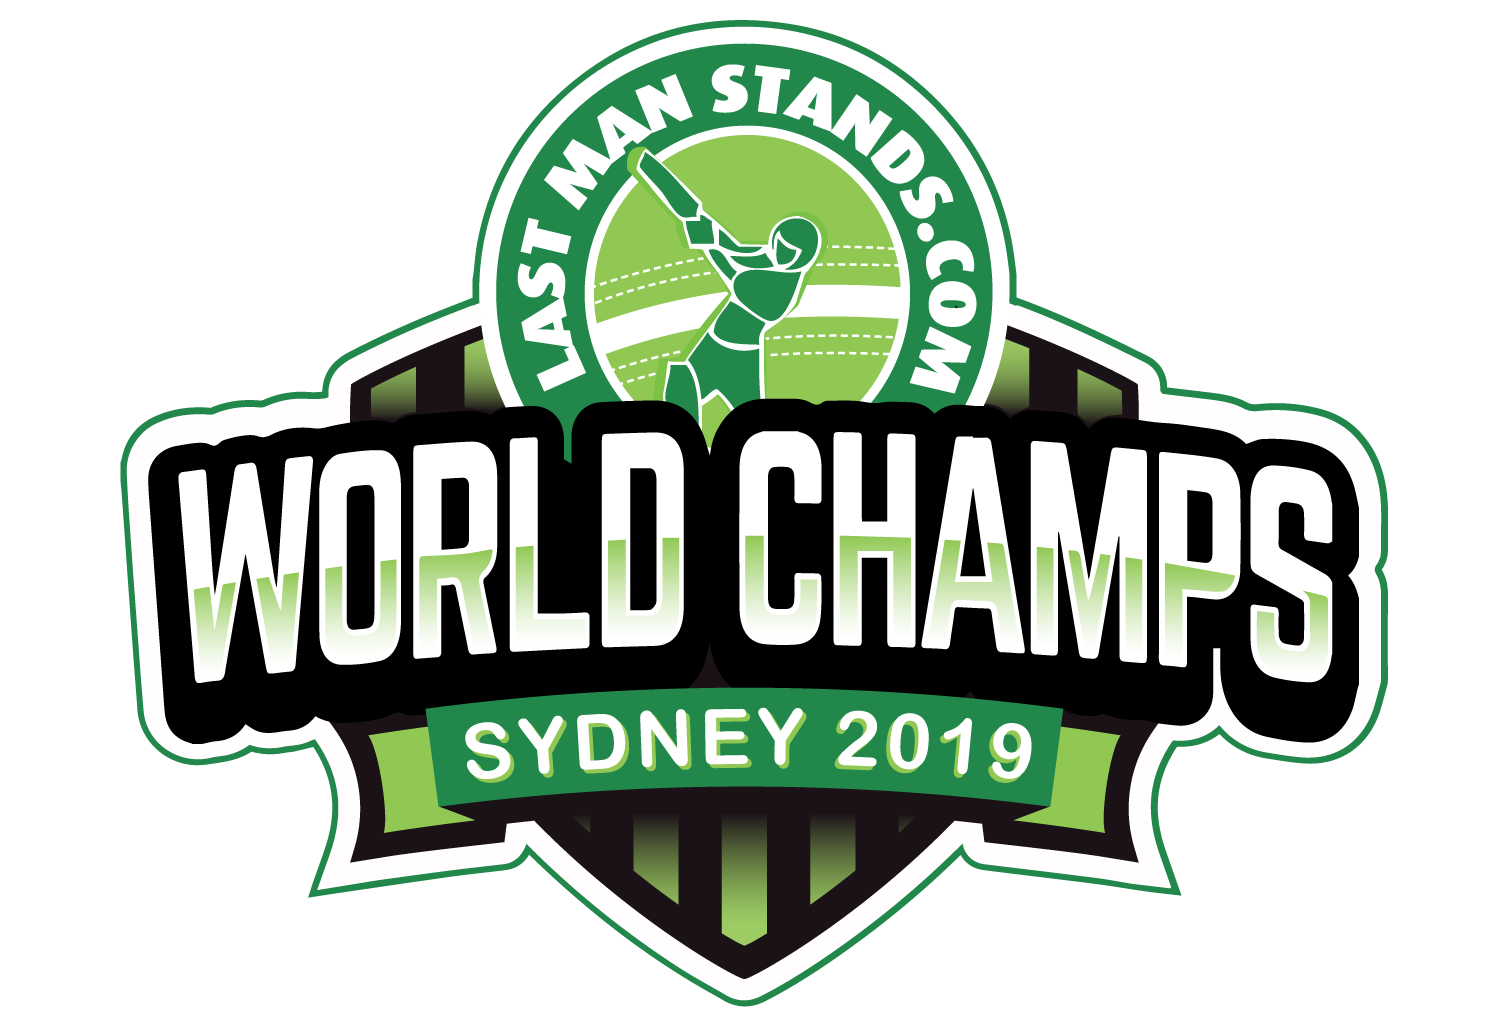 Last Man Stands World Champs 2019